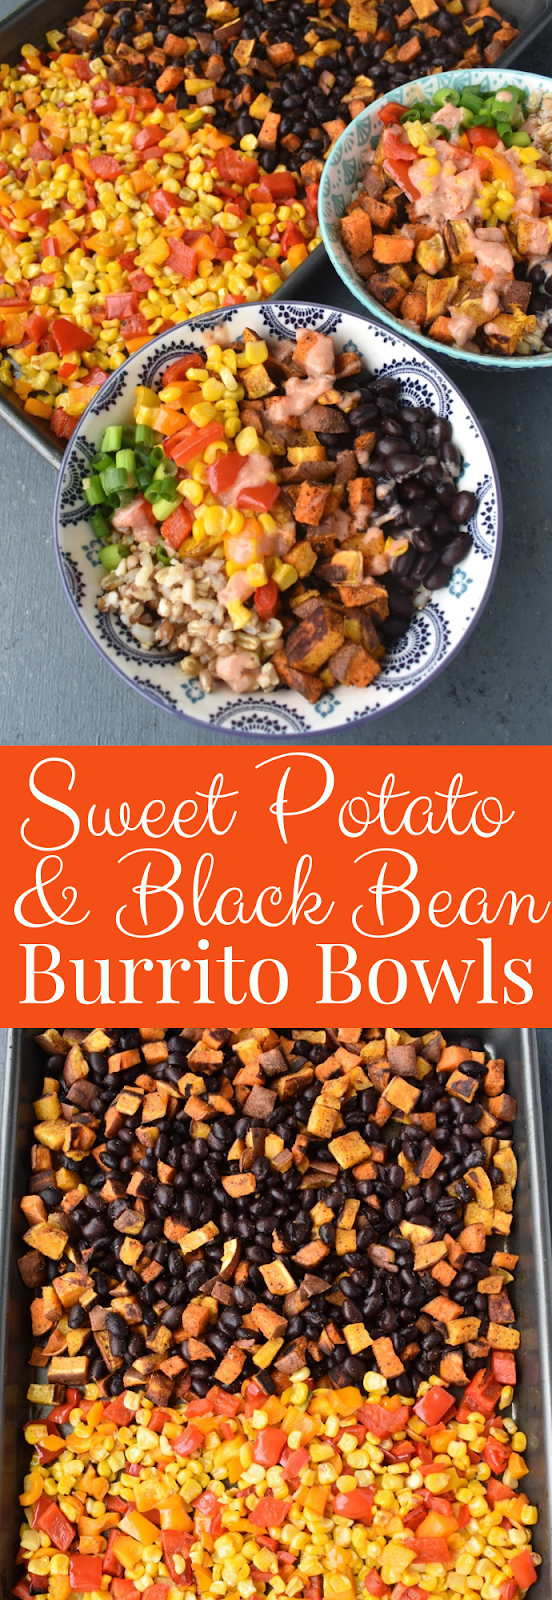 Sweet Potato and Black Bean Burrito Bowls